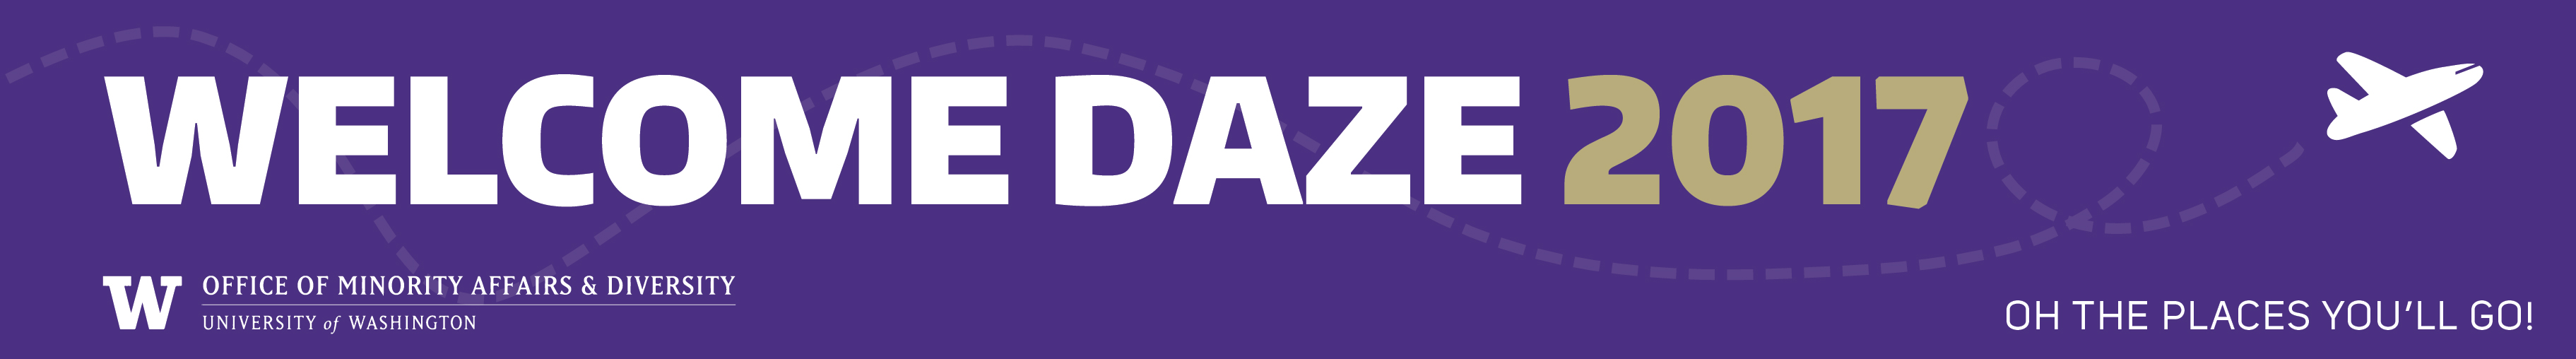 Welcome Daze banner